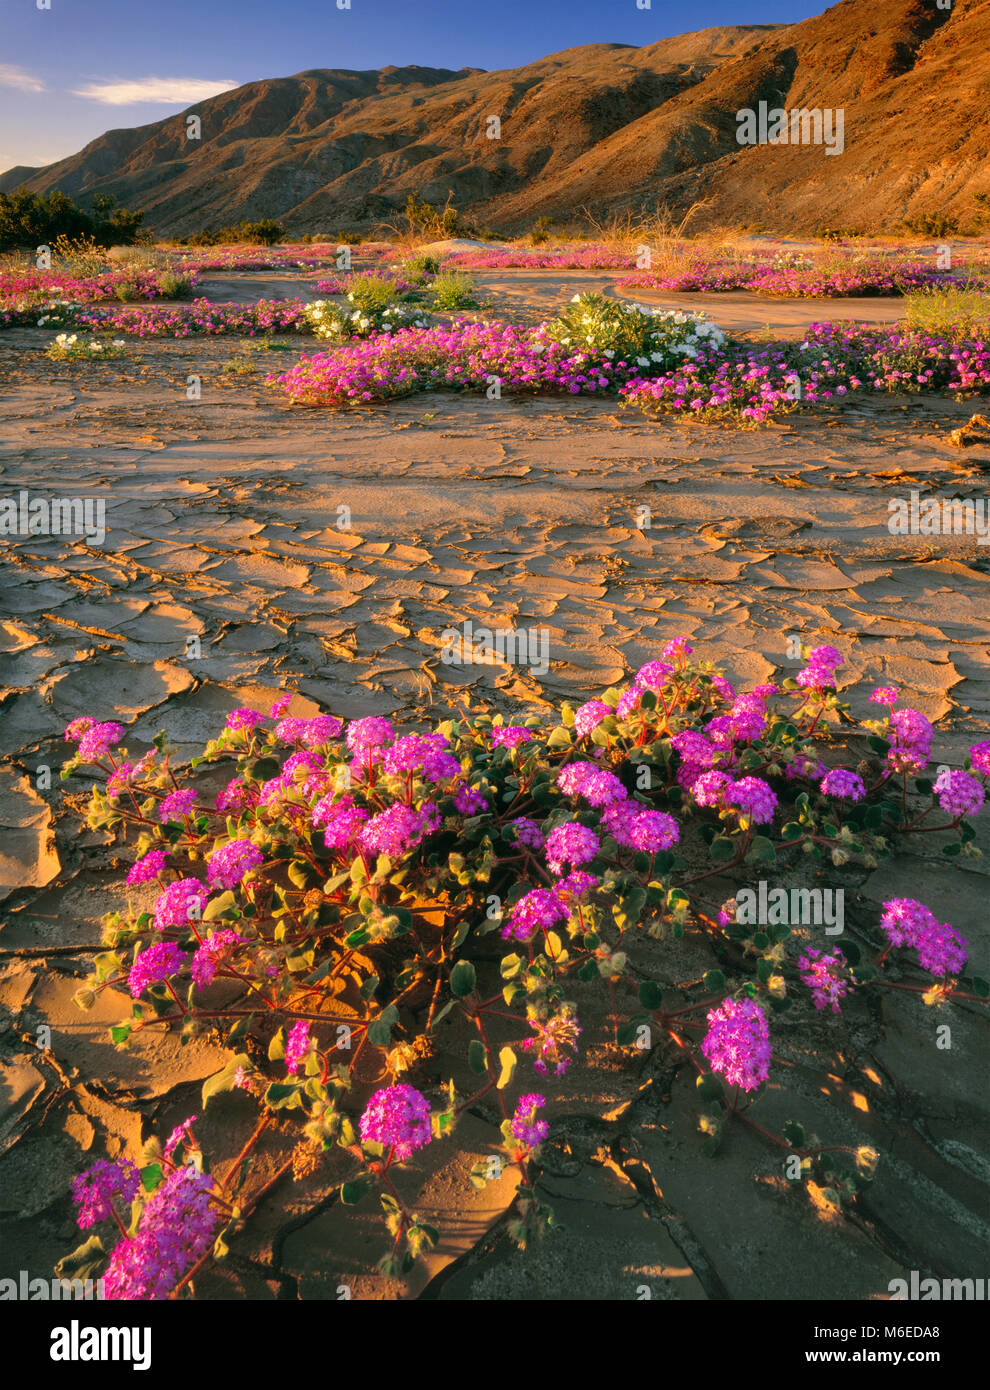 Sand Verbena, Mud Flats, Henderson Canyon, Anza-Borrego Desert State Park, CA - Stock Image